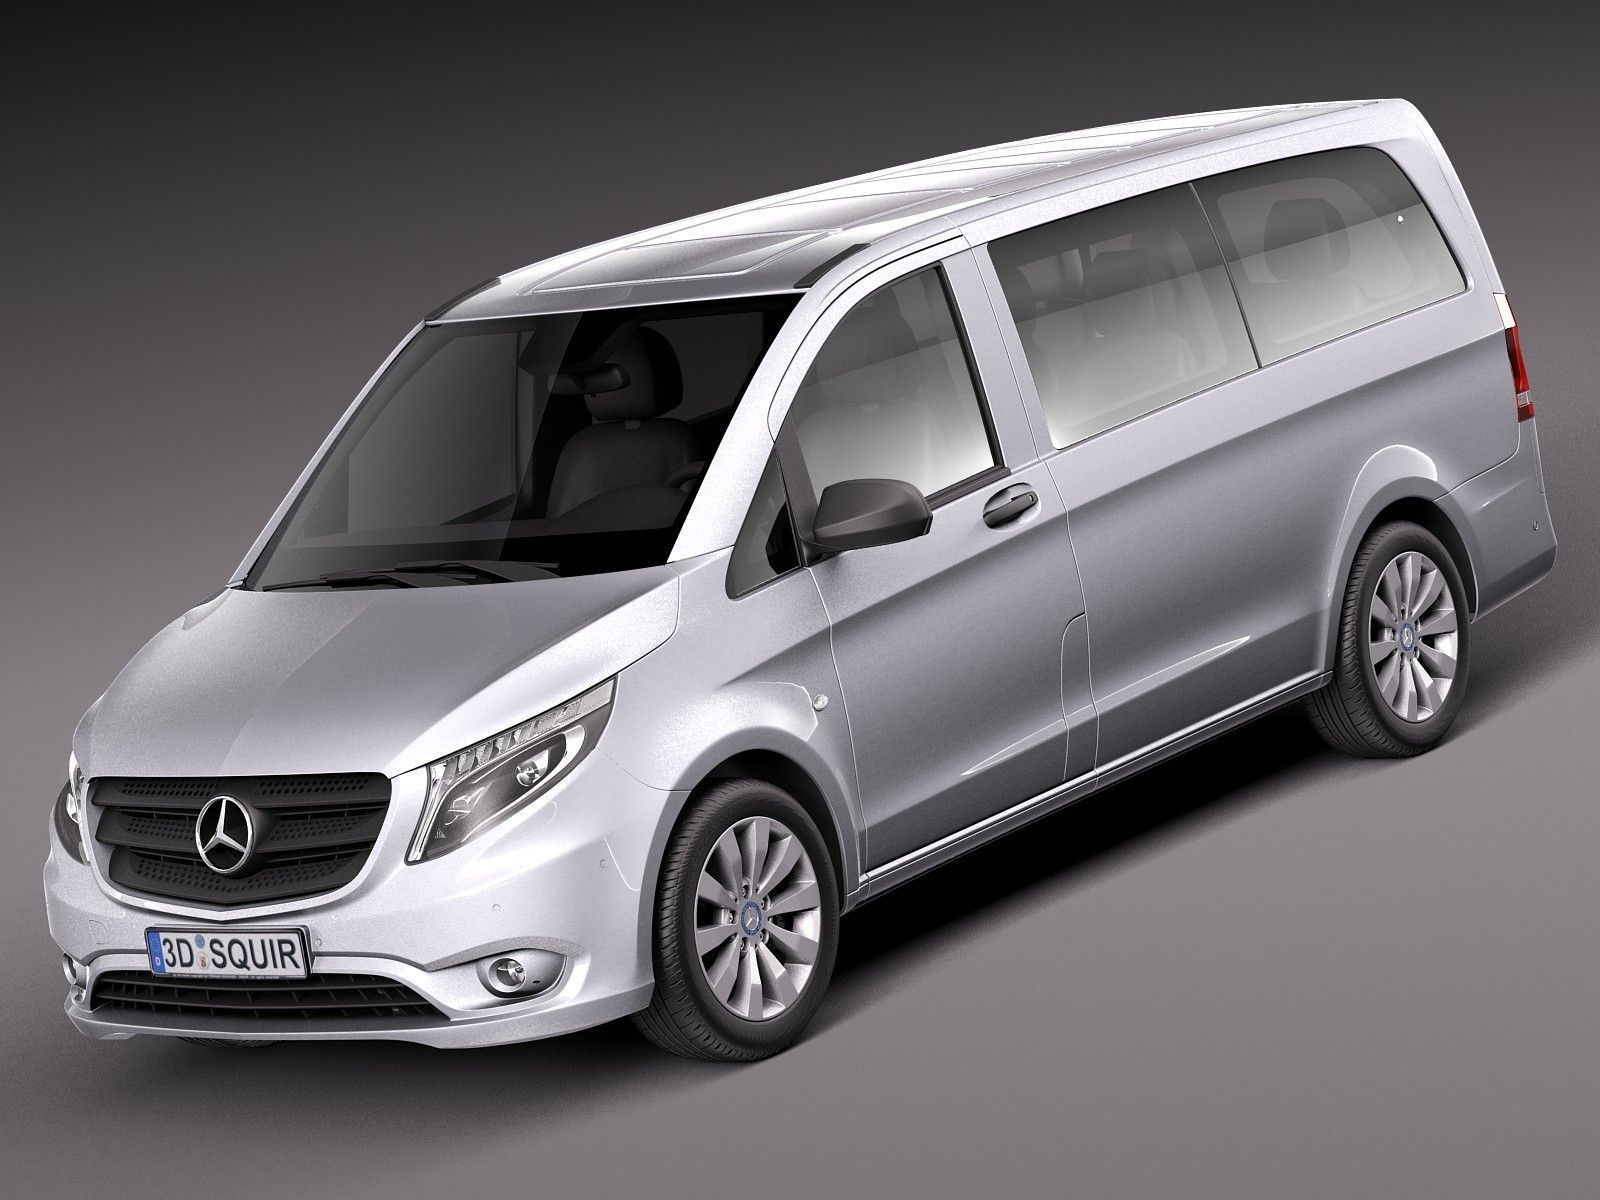 mercedes benz vito tourer 2016 3d model max obj 3ds fbx c4d lwo lw lws. Black Bedroom Furniture Sets. Home Design Ideas